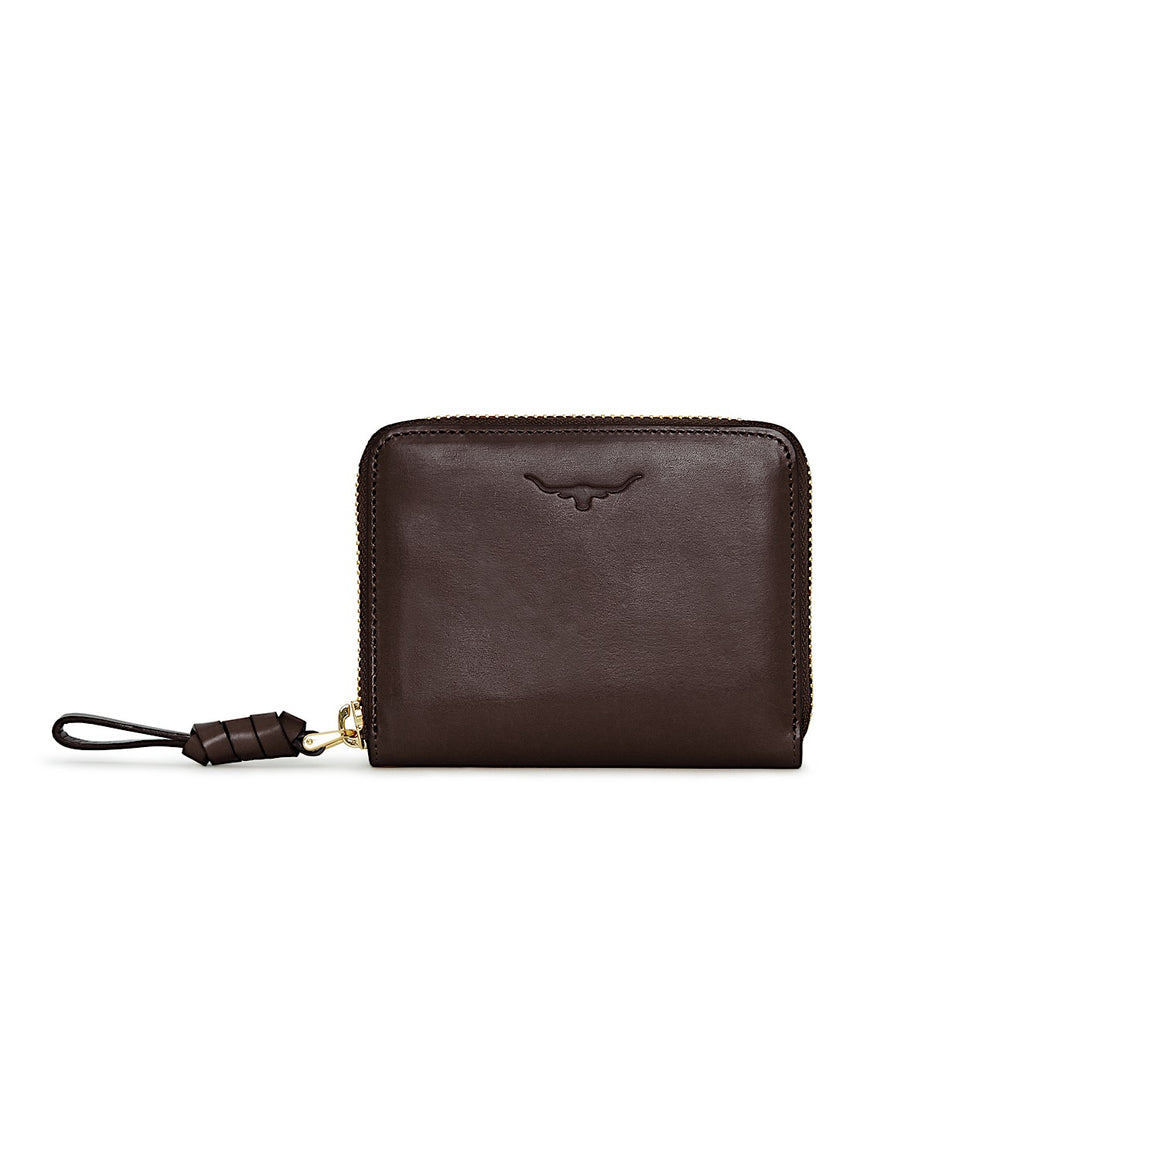 R.M.Williams Womens City Short Zip Wallet Chestnut